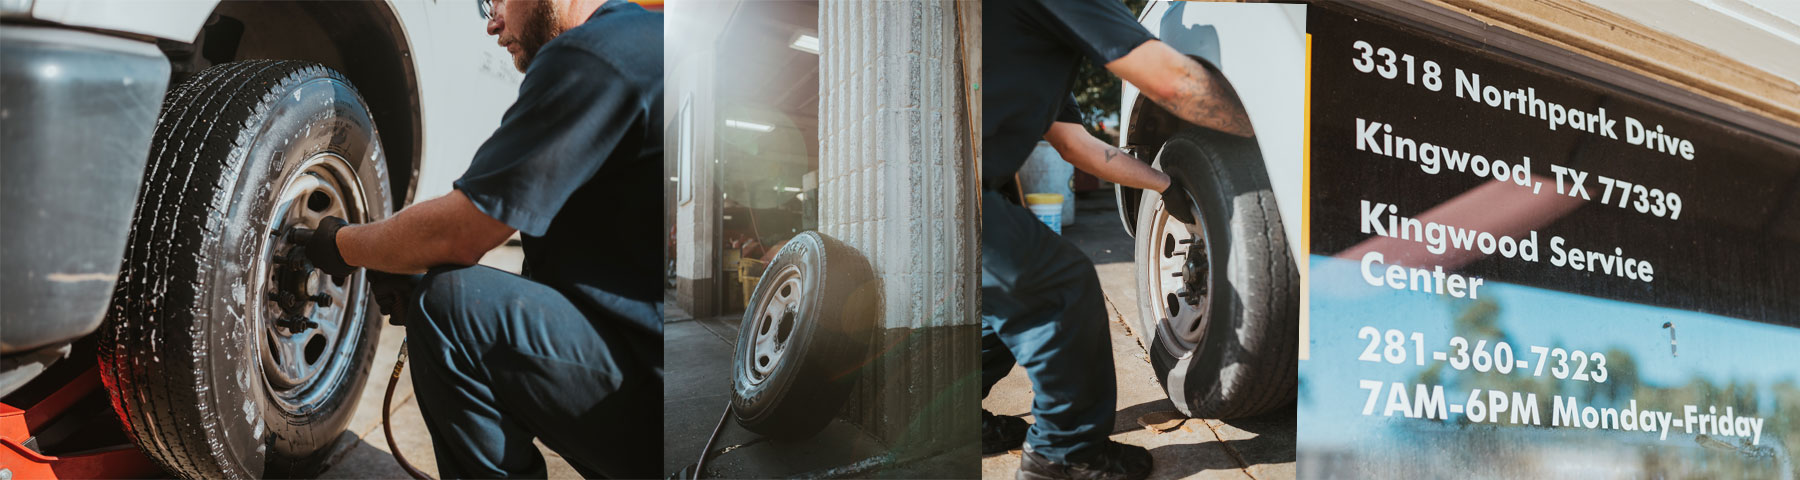 Kingwood service center expert auto repair kingwood tx 77339 your source for tires solutioingenieria Image collections